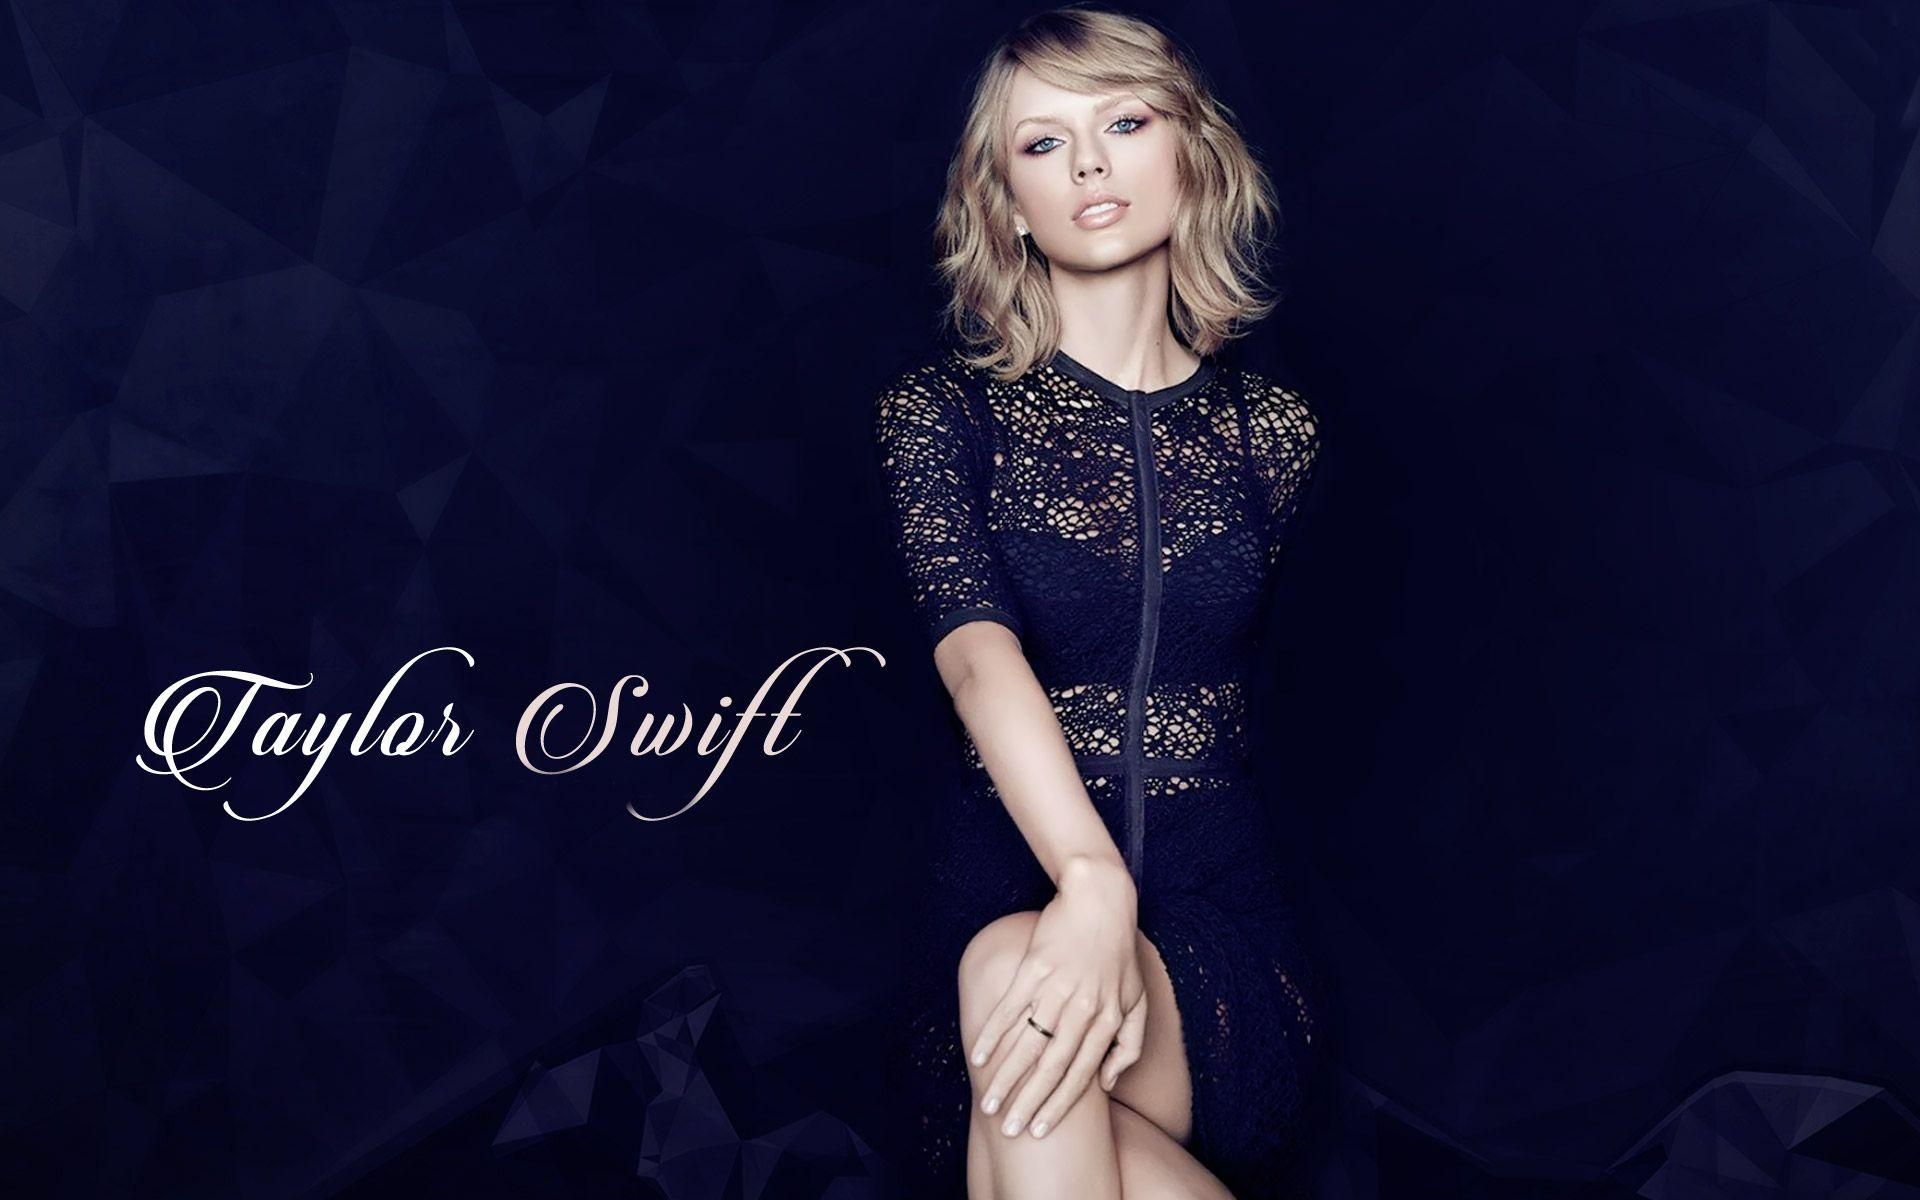 Taylor Swift 1989 Wallpapers